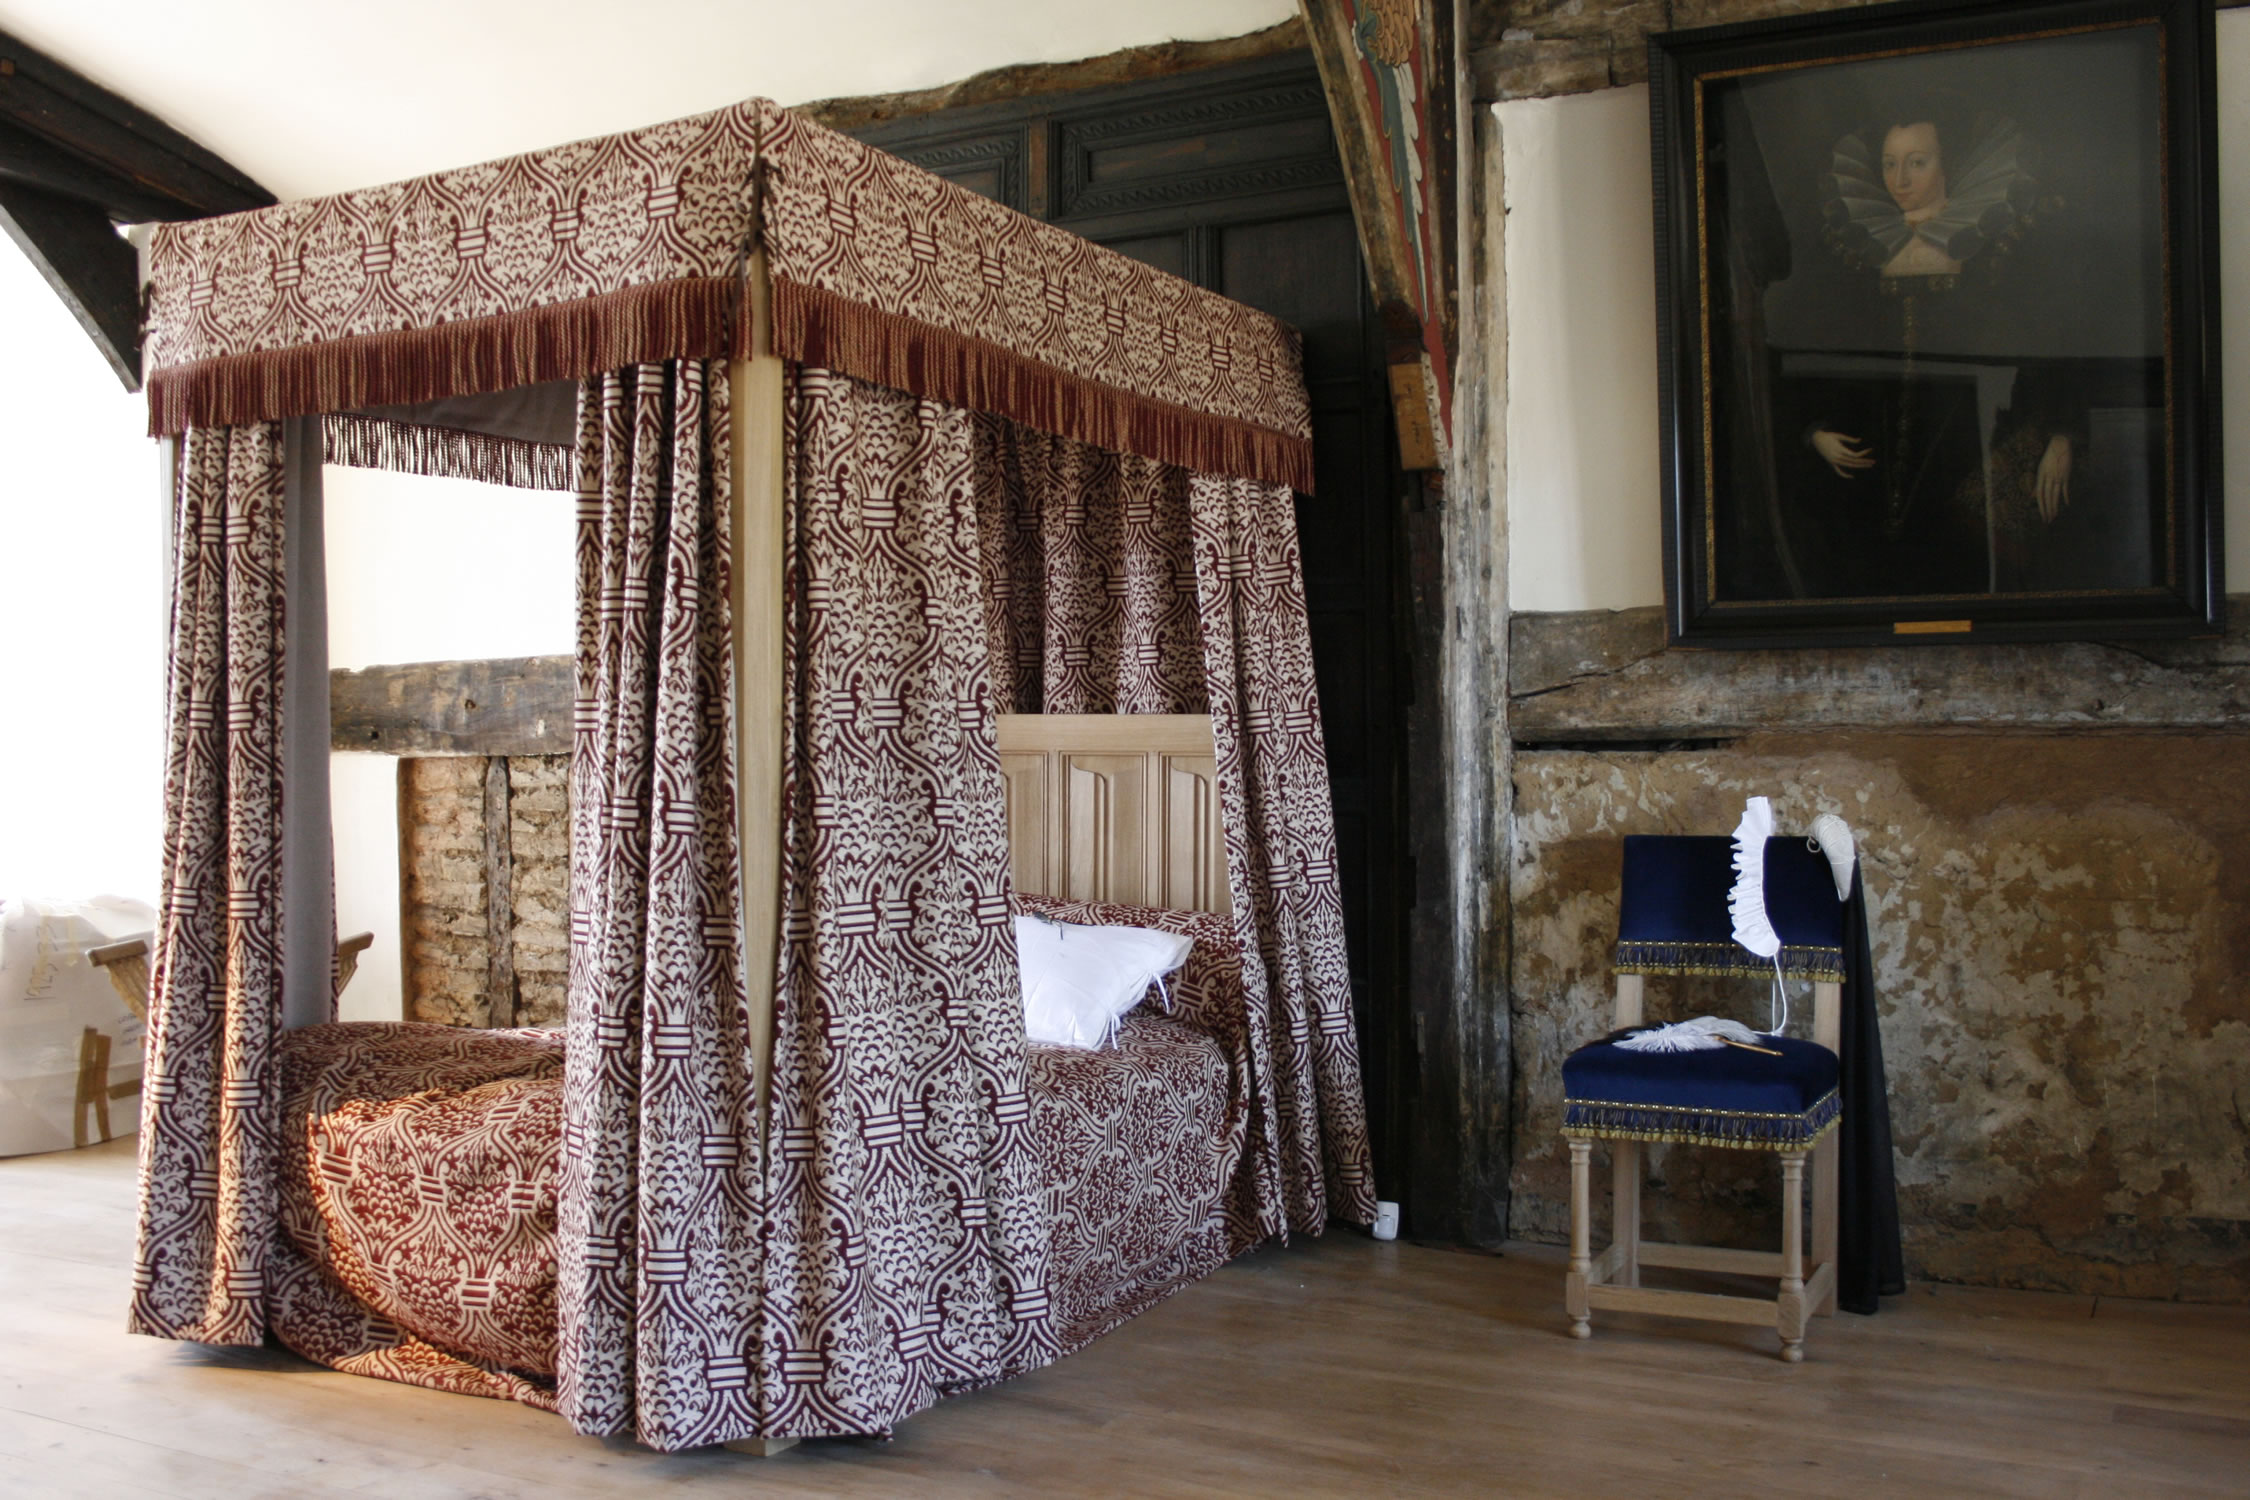 Carved oak tester bed with drapes for C16th Ordsall Hall, Manchester